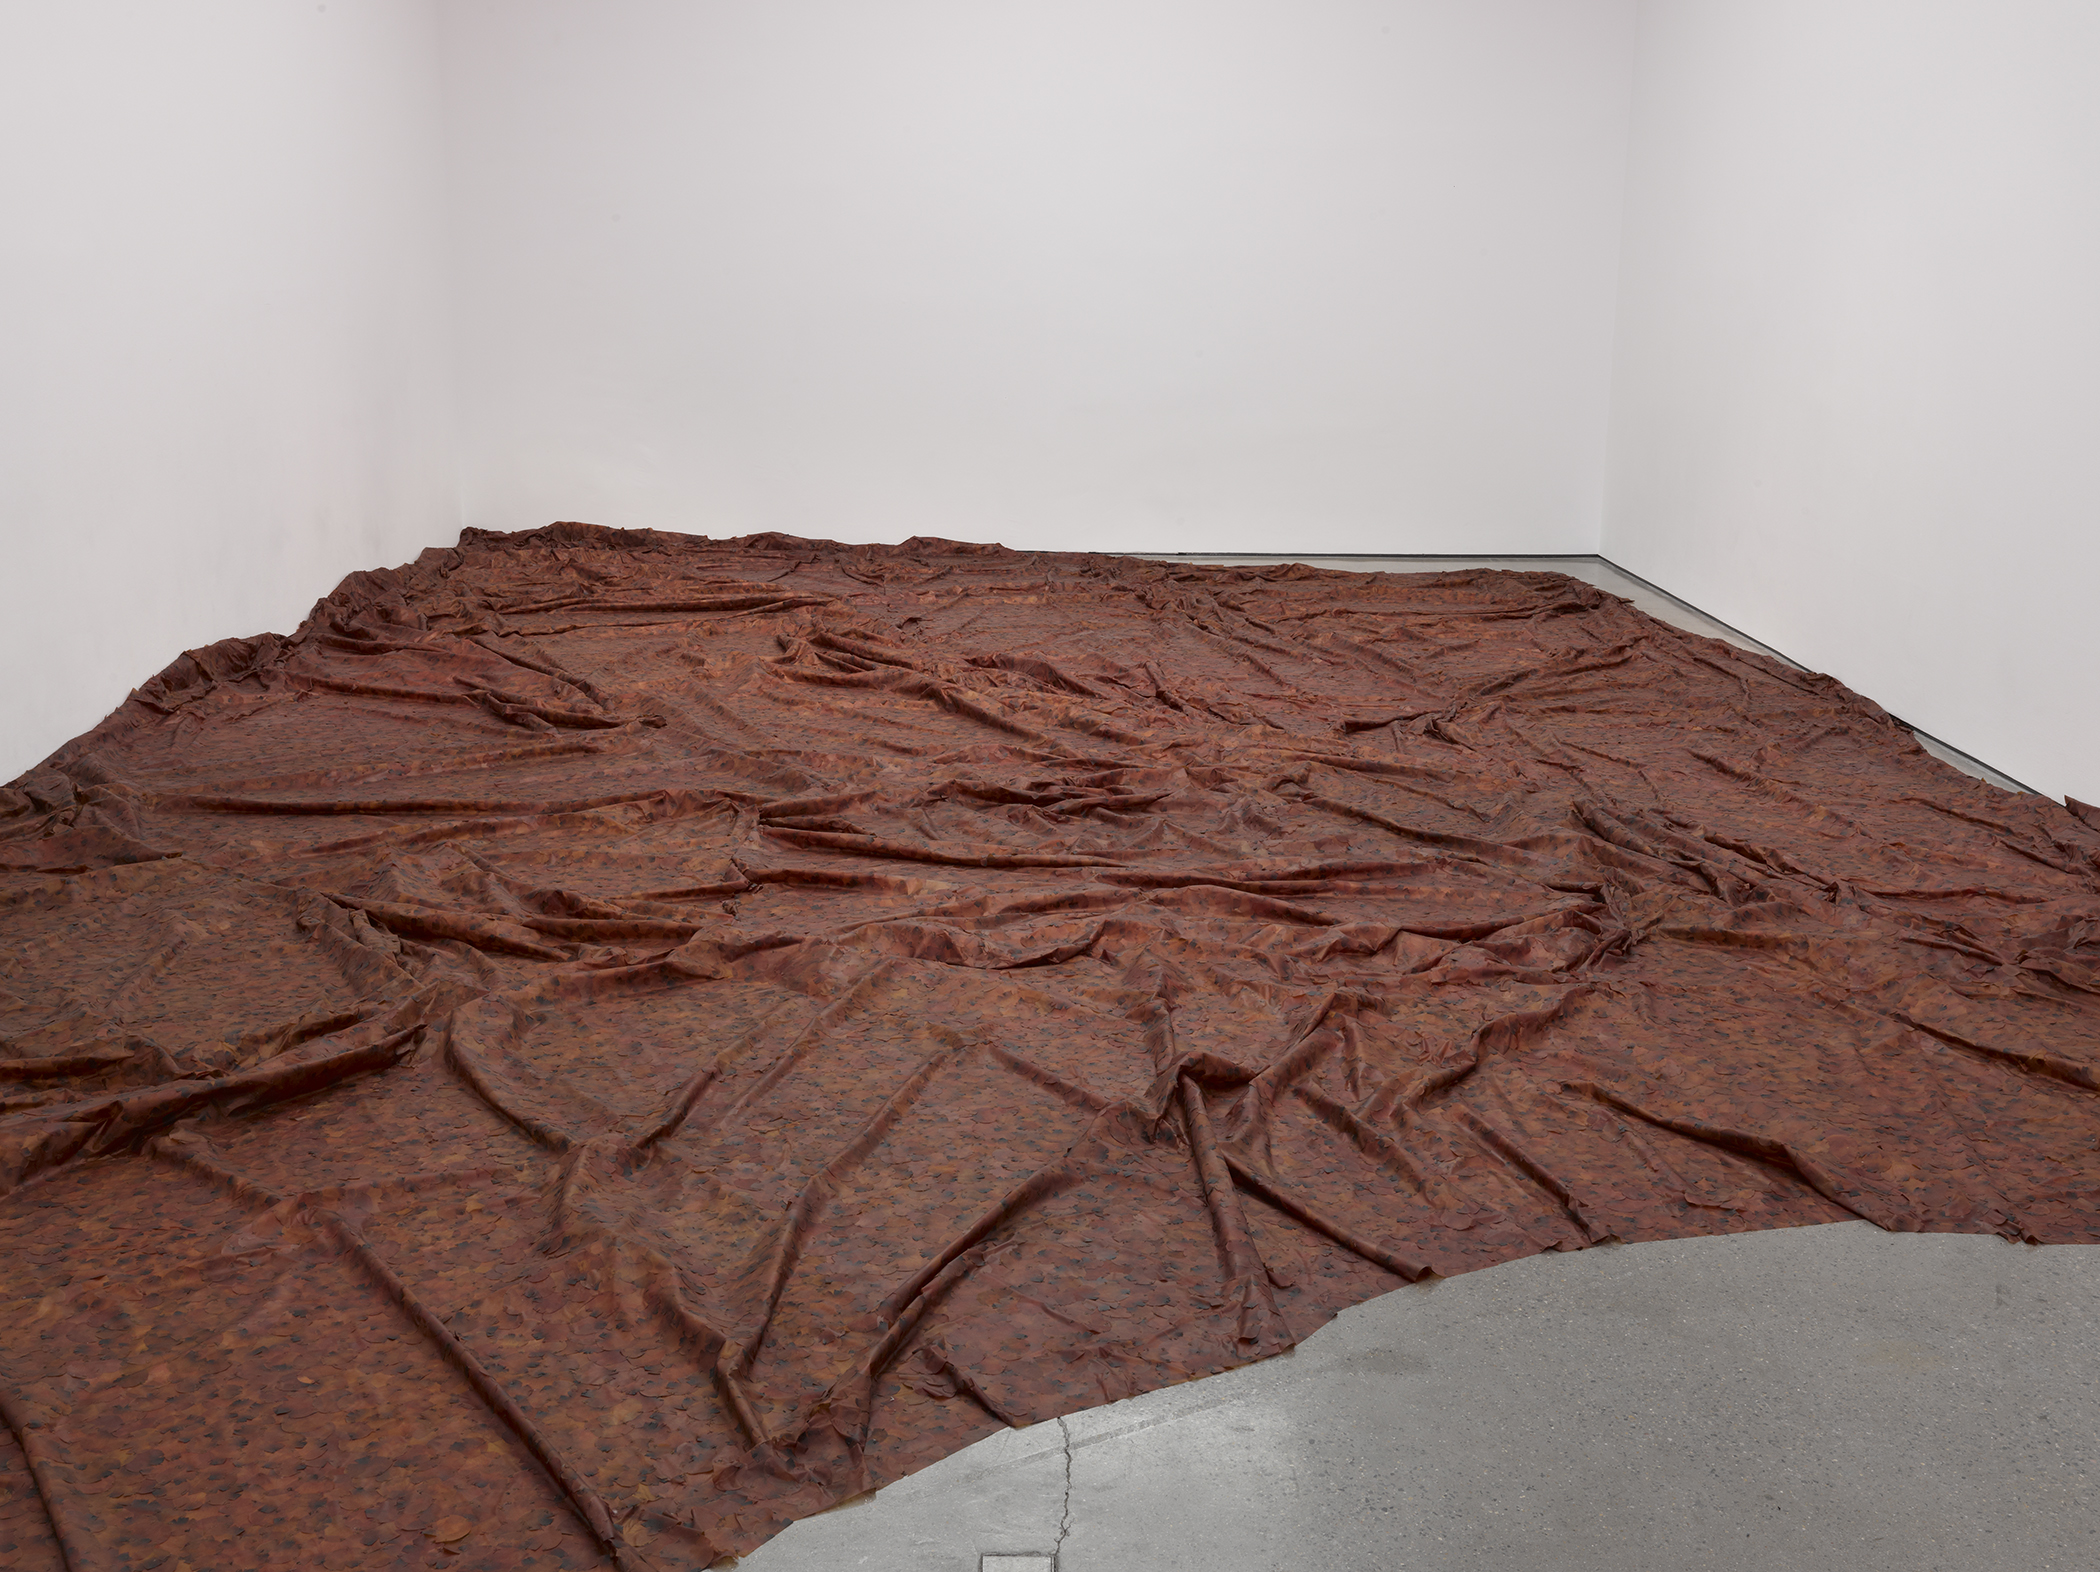 Doris Salcedo, A Flor de Piel, 2011-12. Rose petals and thread. Installation view, White Cube, London, 2012. Photo: Ben Westoby.